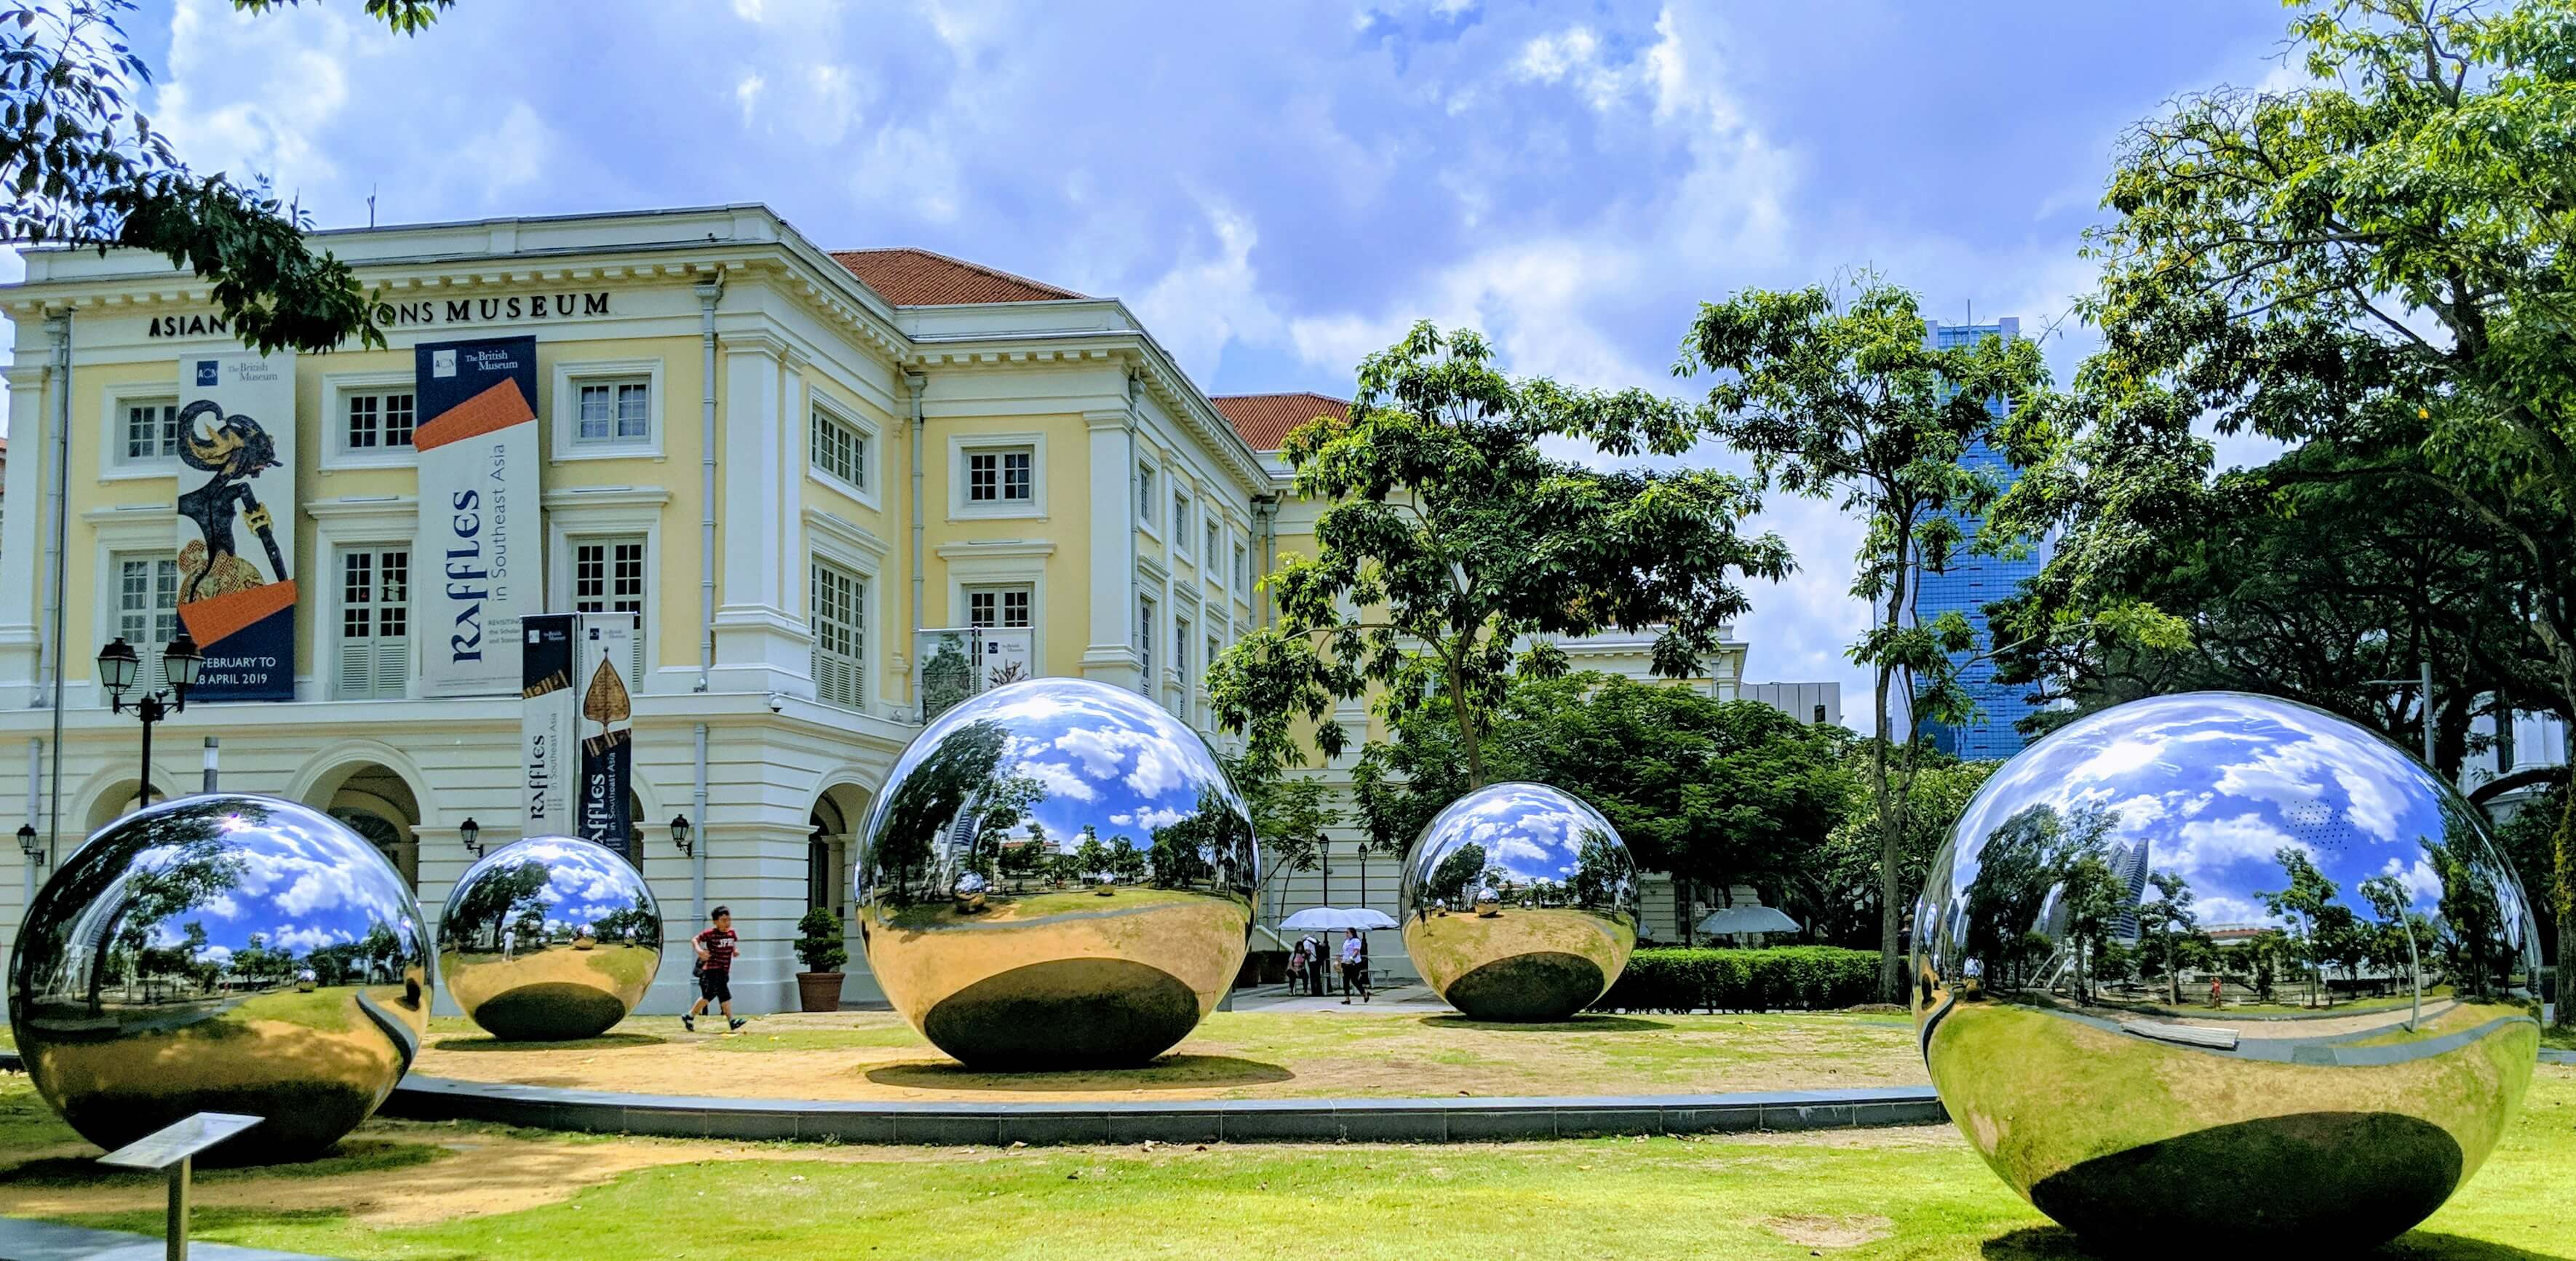 Giant mirrored balls in front of the Asian Civilizations Museum.